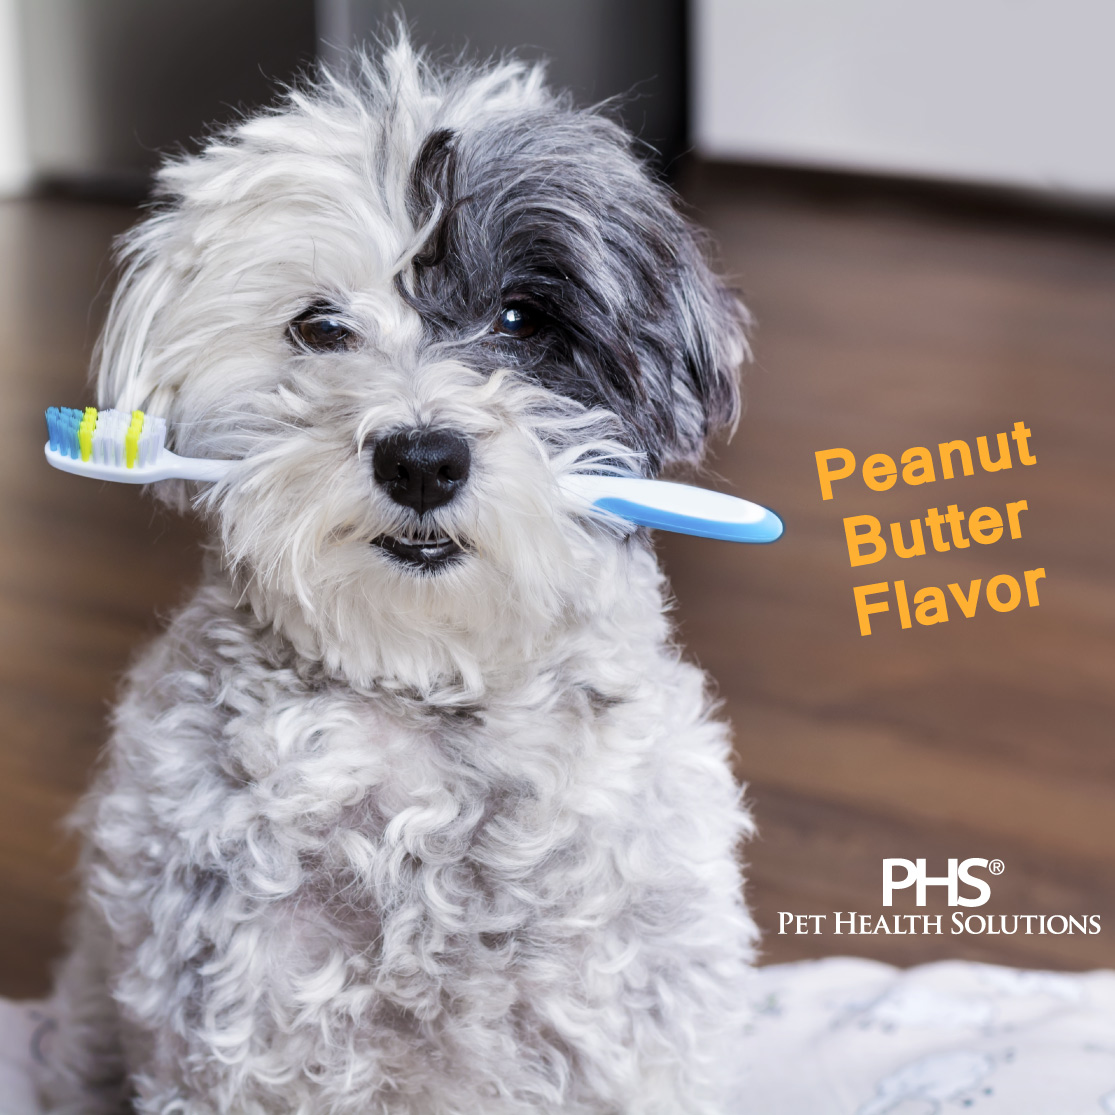 Dog holding a toothbrush; Peanut Butter Flavor; PHS Pet Health Solutions